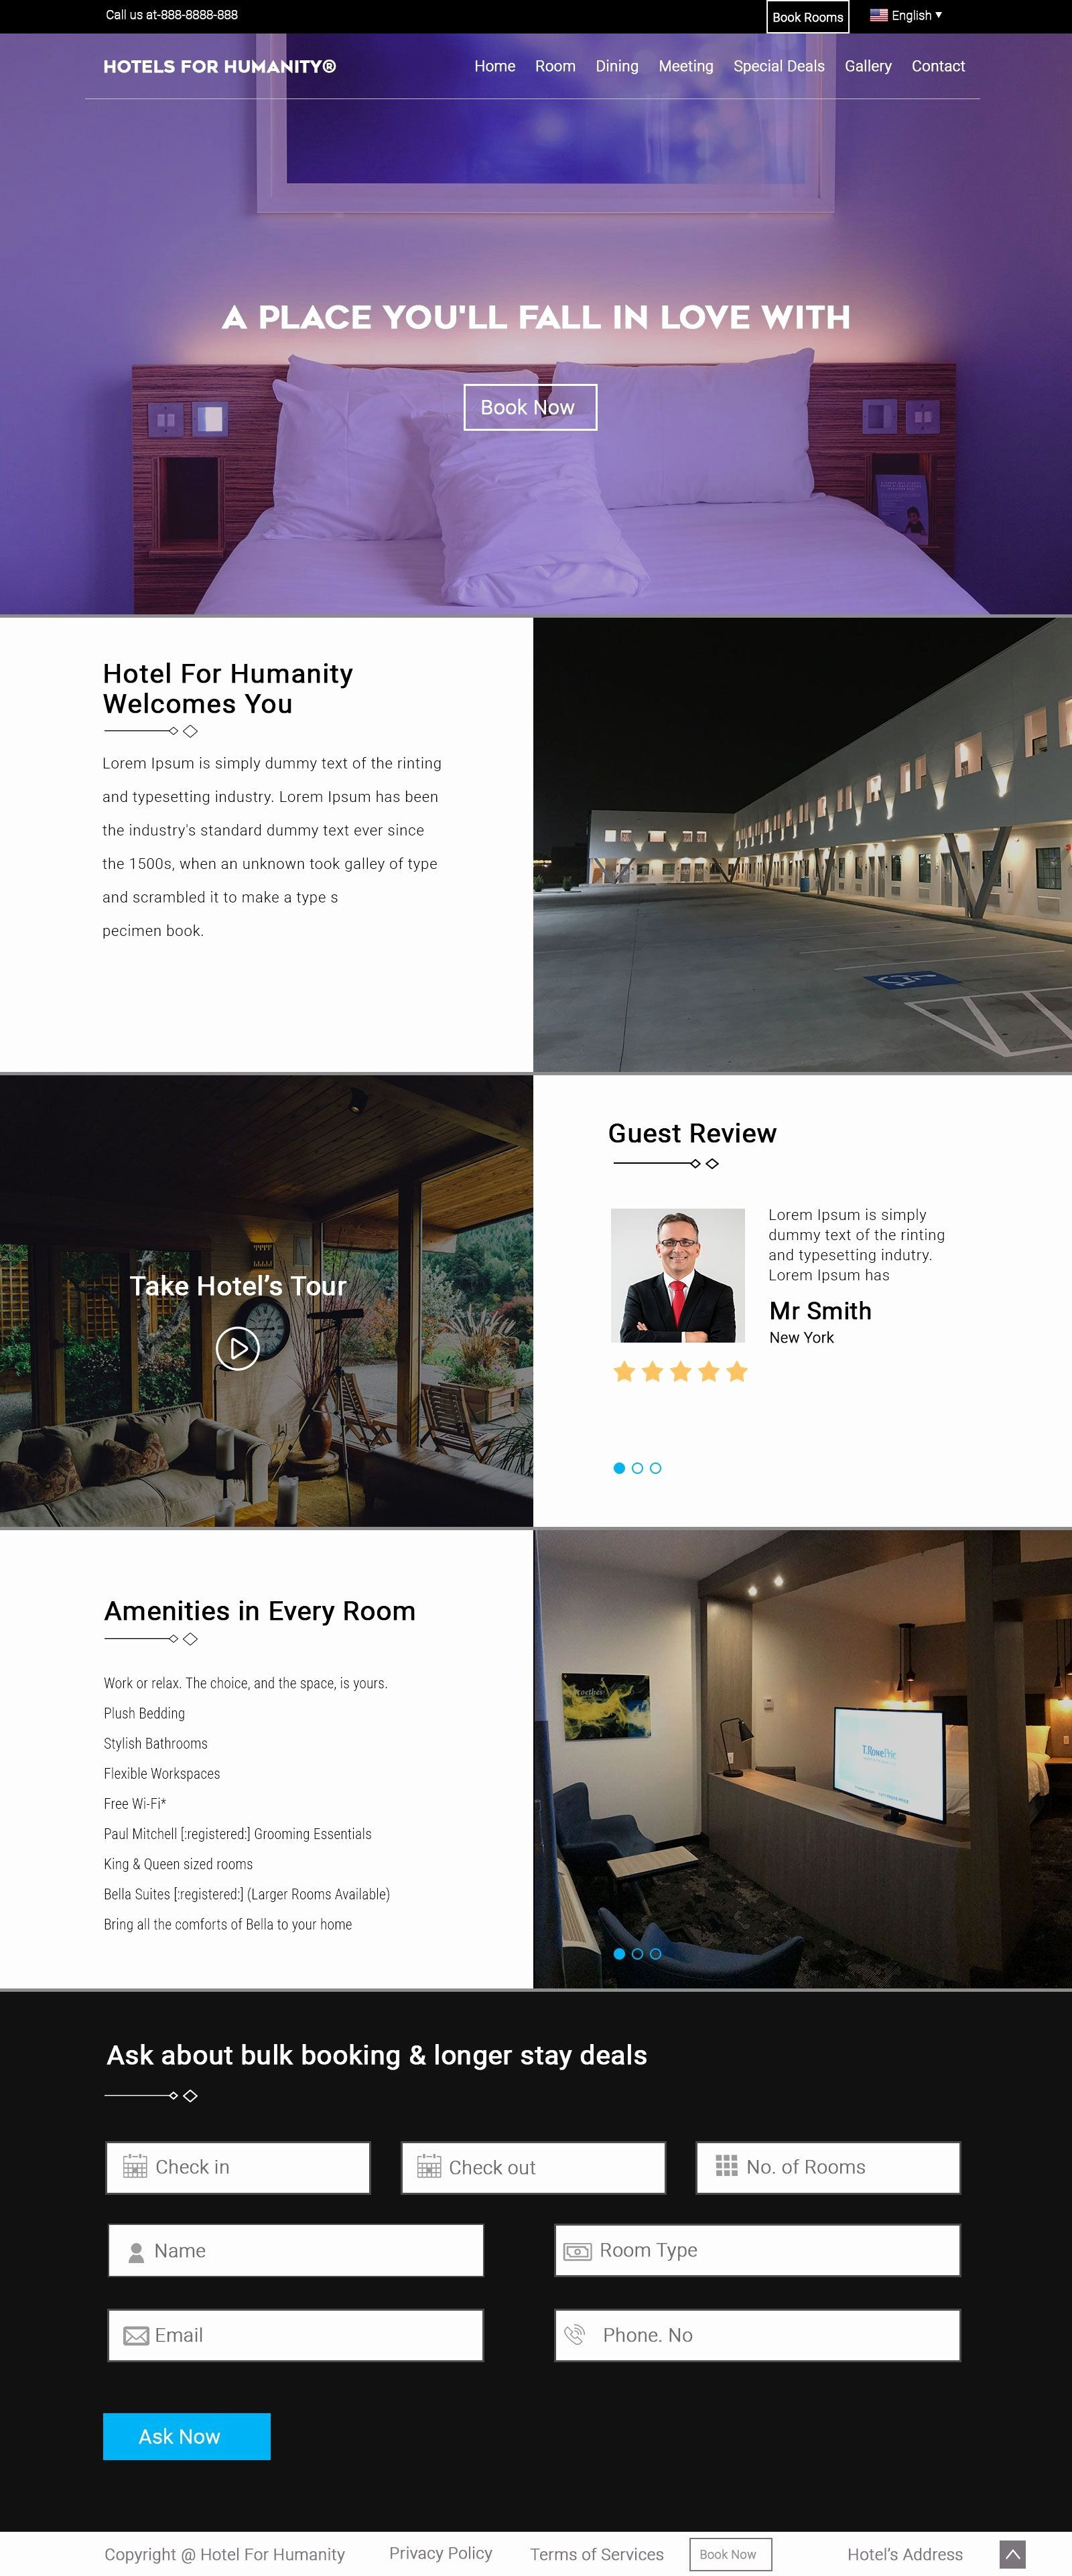 Responsive Web Design Html Template Free Download In 2020 Web Design Templates Free Hotel Website Design Website Design Free